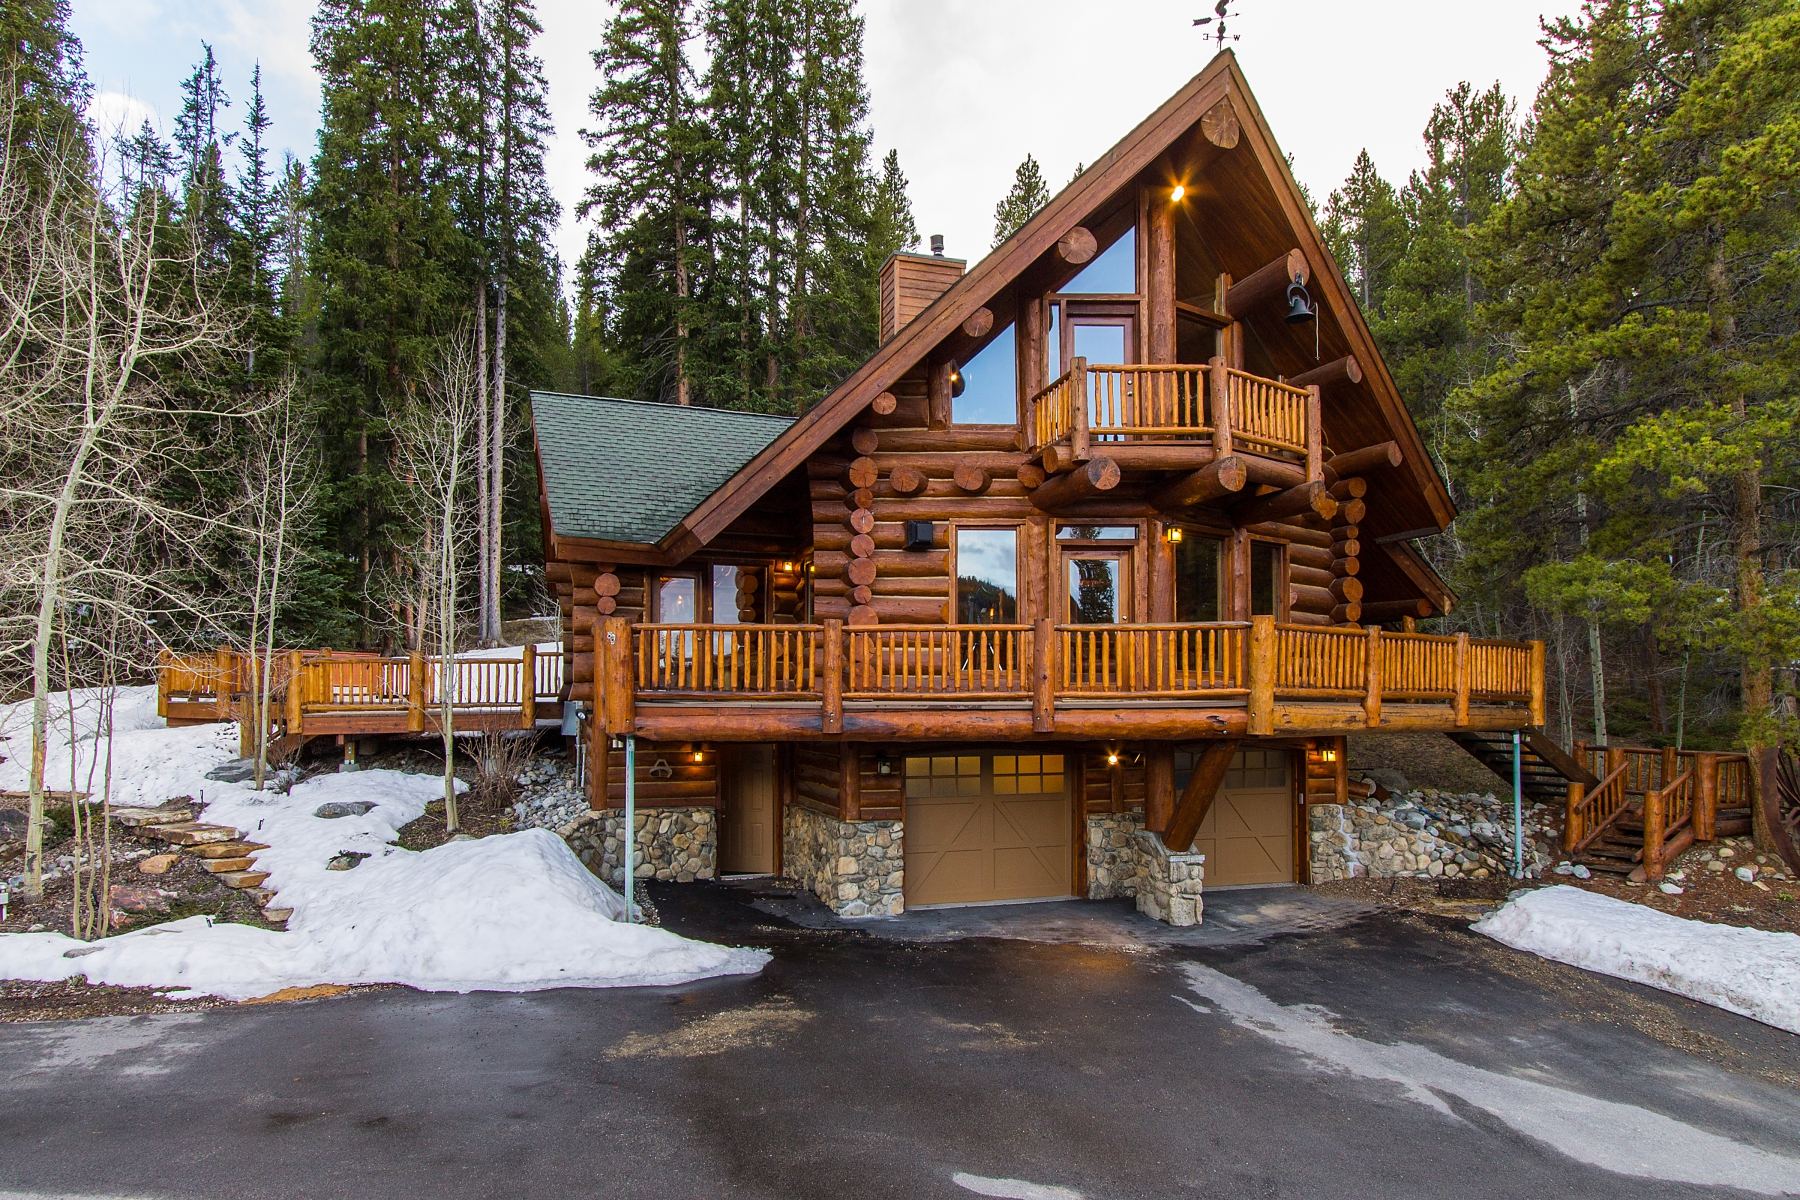 Single Family Home for Sale at Beautiful Log Home on 31 Acres 2602 Tiger Road Breckenridge, Colorado 80424 United States